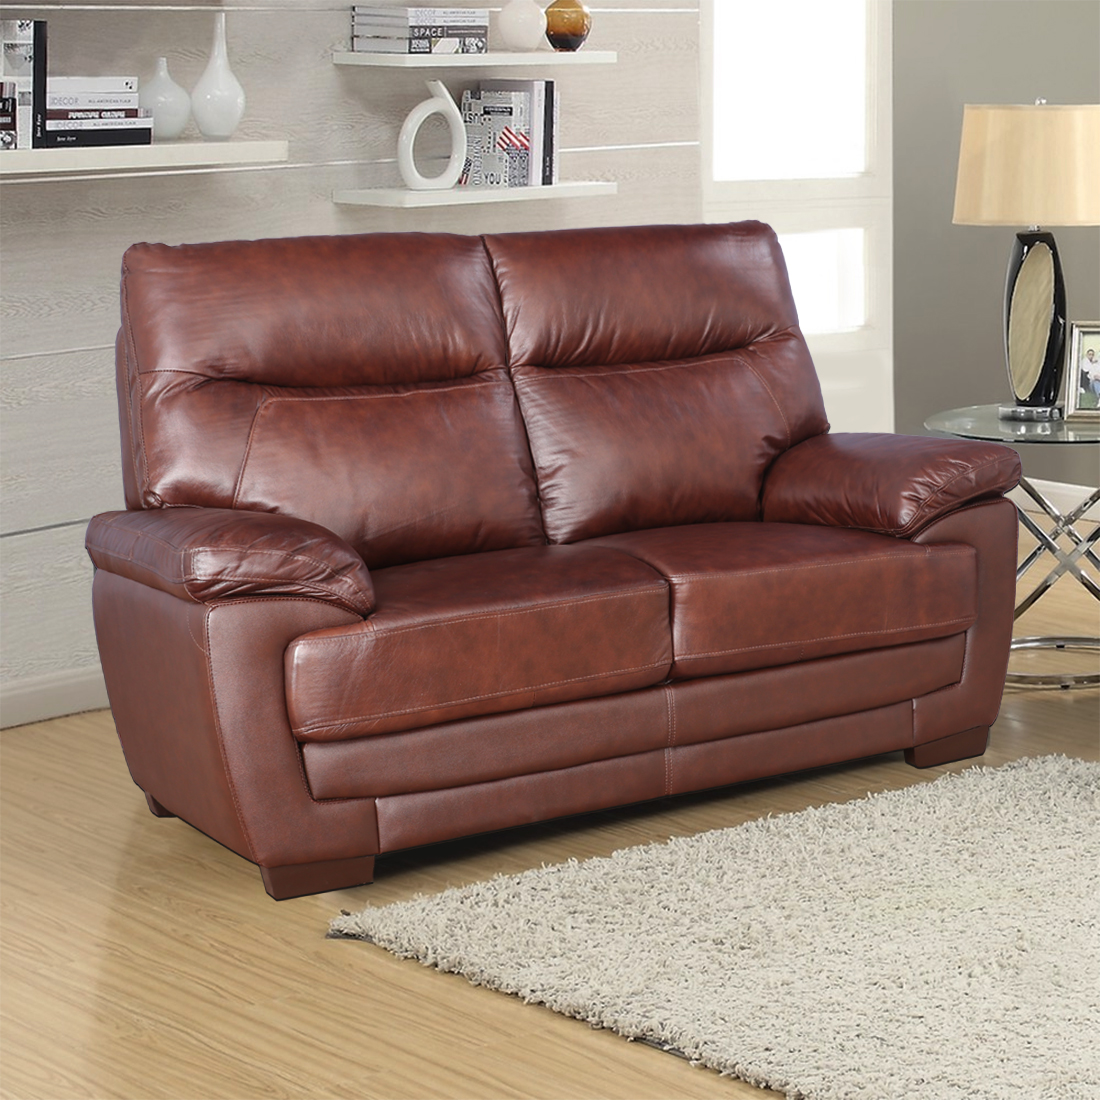 Jefferson Half Leather Two Seater Sofa in Brown Colour by HomeTown